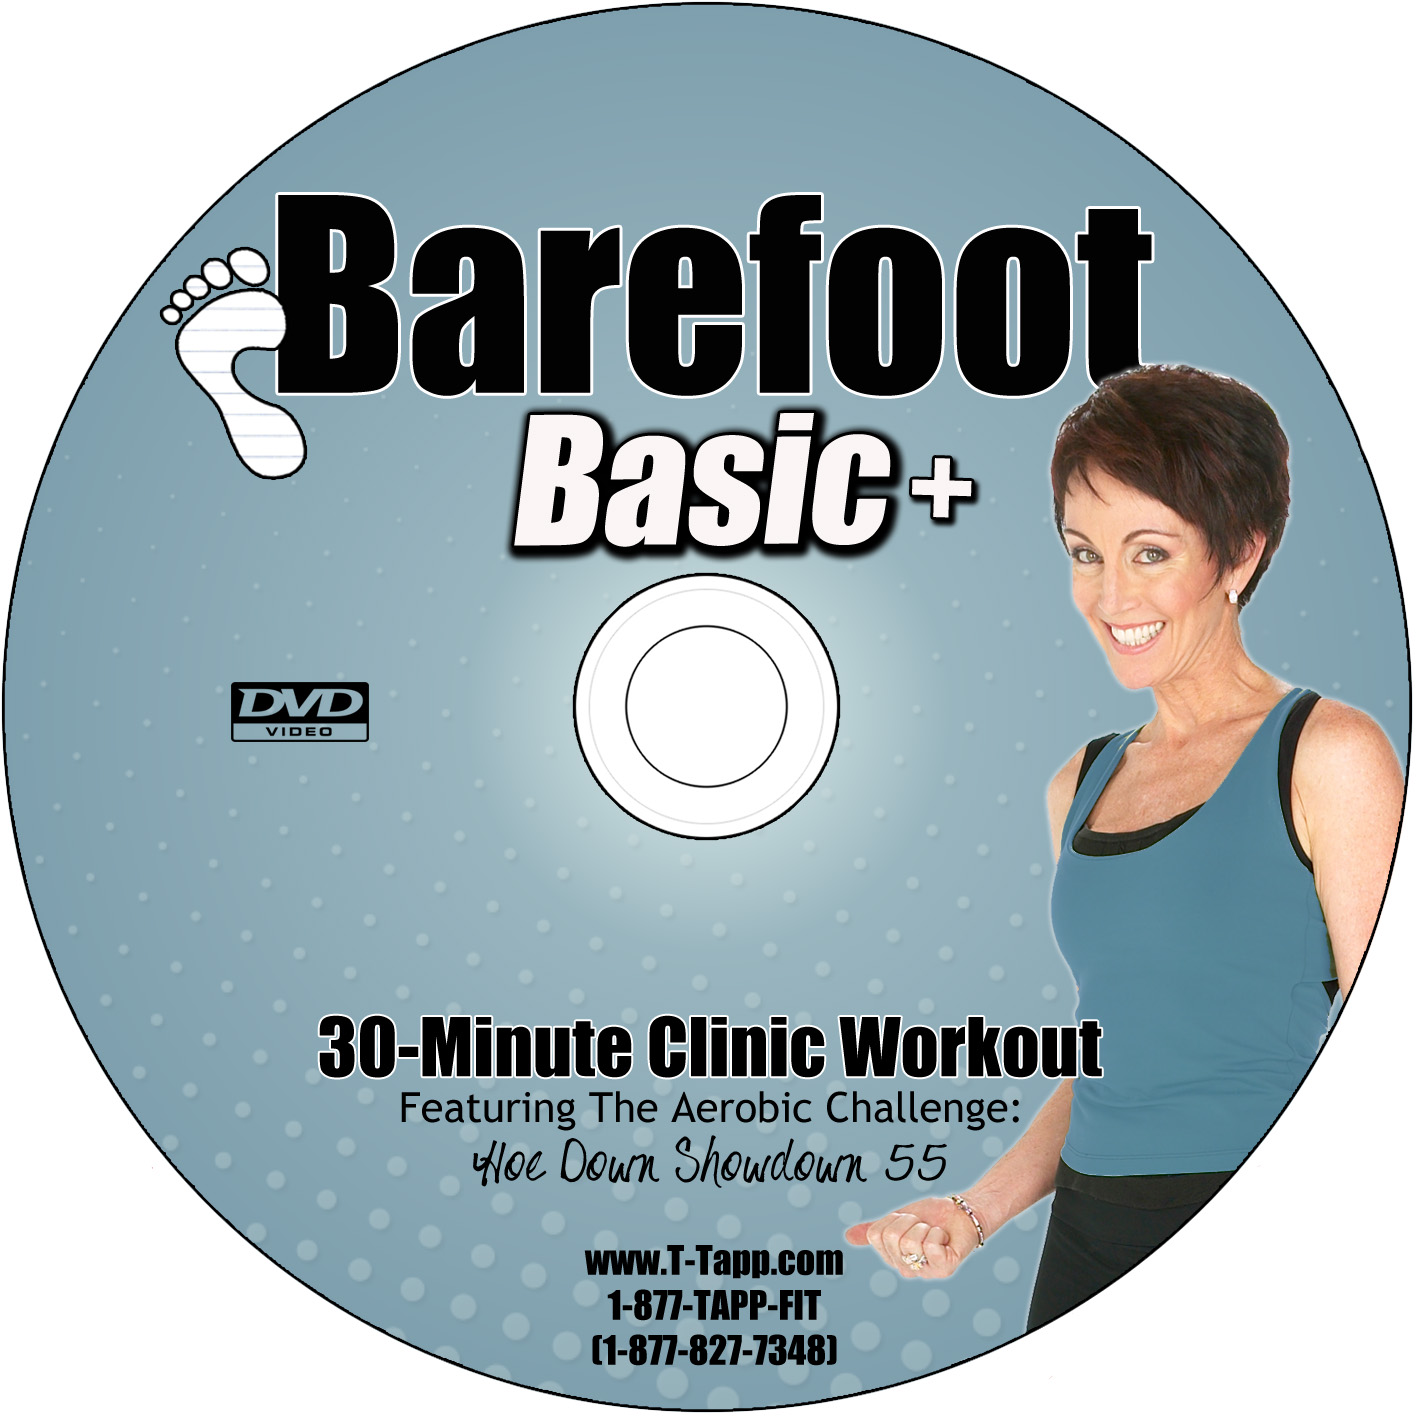 Charlotte S Fitness Dvd Reviews: [Workout Review] T-Tapp's Barefoot Basic Plus DVD